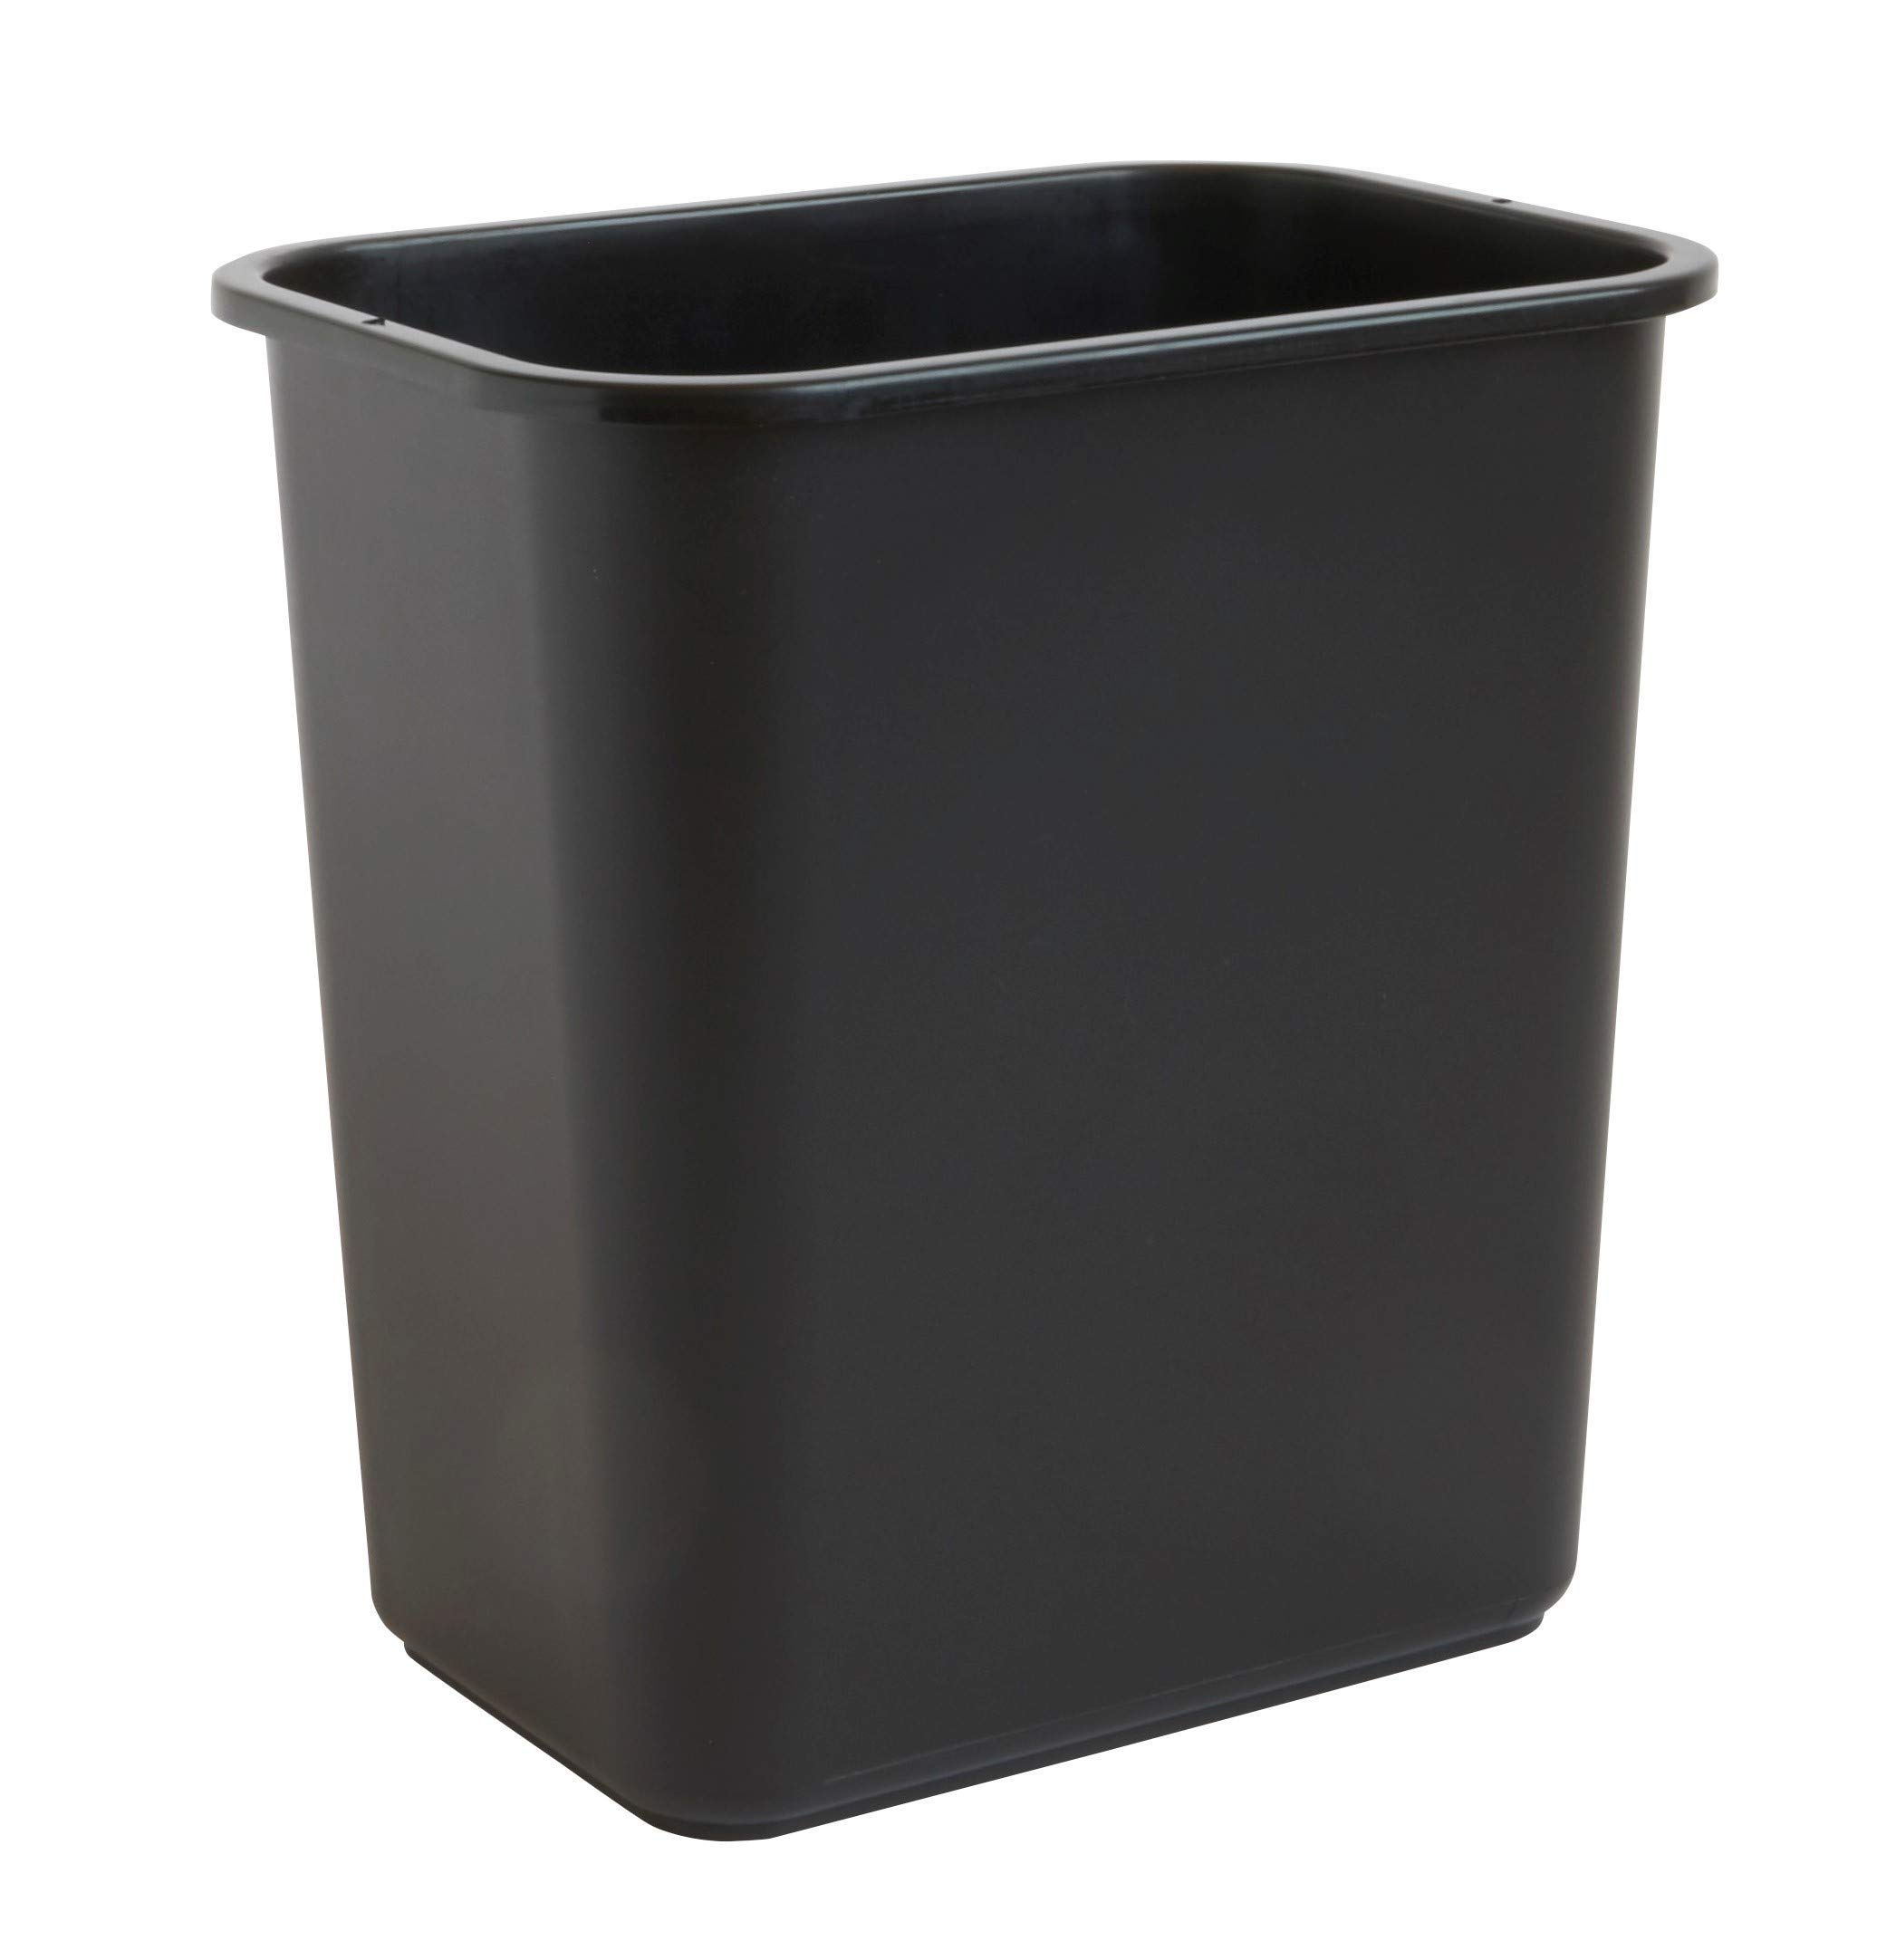 United Solutions 7 Gallon/28 Quart Space-Efficient Trash Wastebasket   Pack of 12   Fits Under Desk   Small, Narrow Spaces in Commercial Office, Kitchen, Home Office, Dorm   Easy to Clean   Black